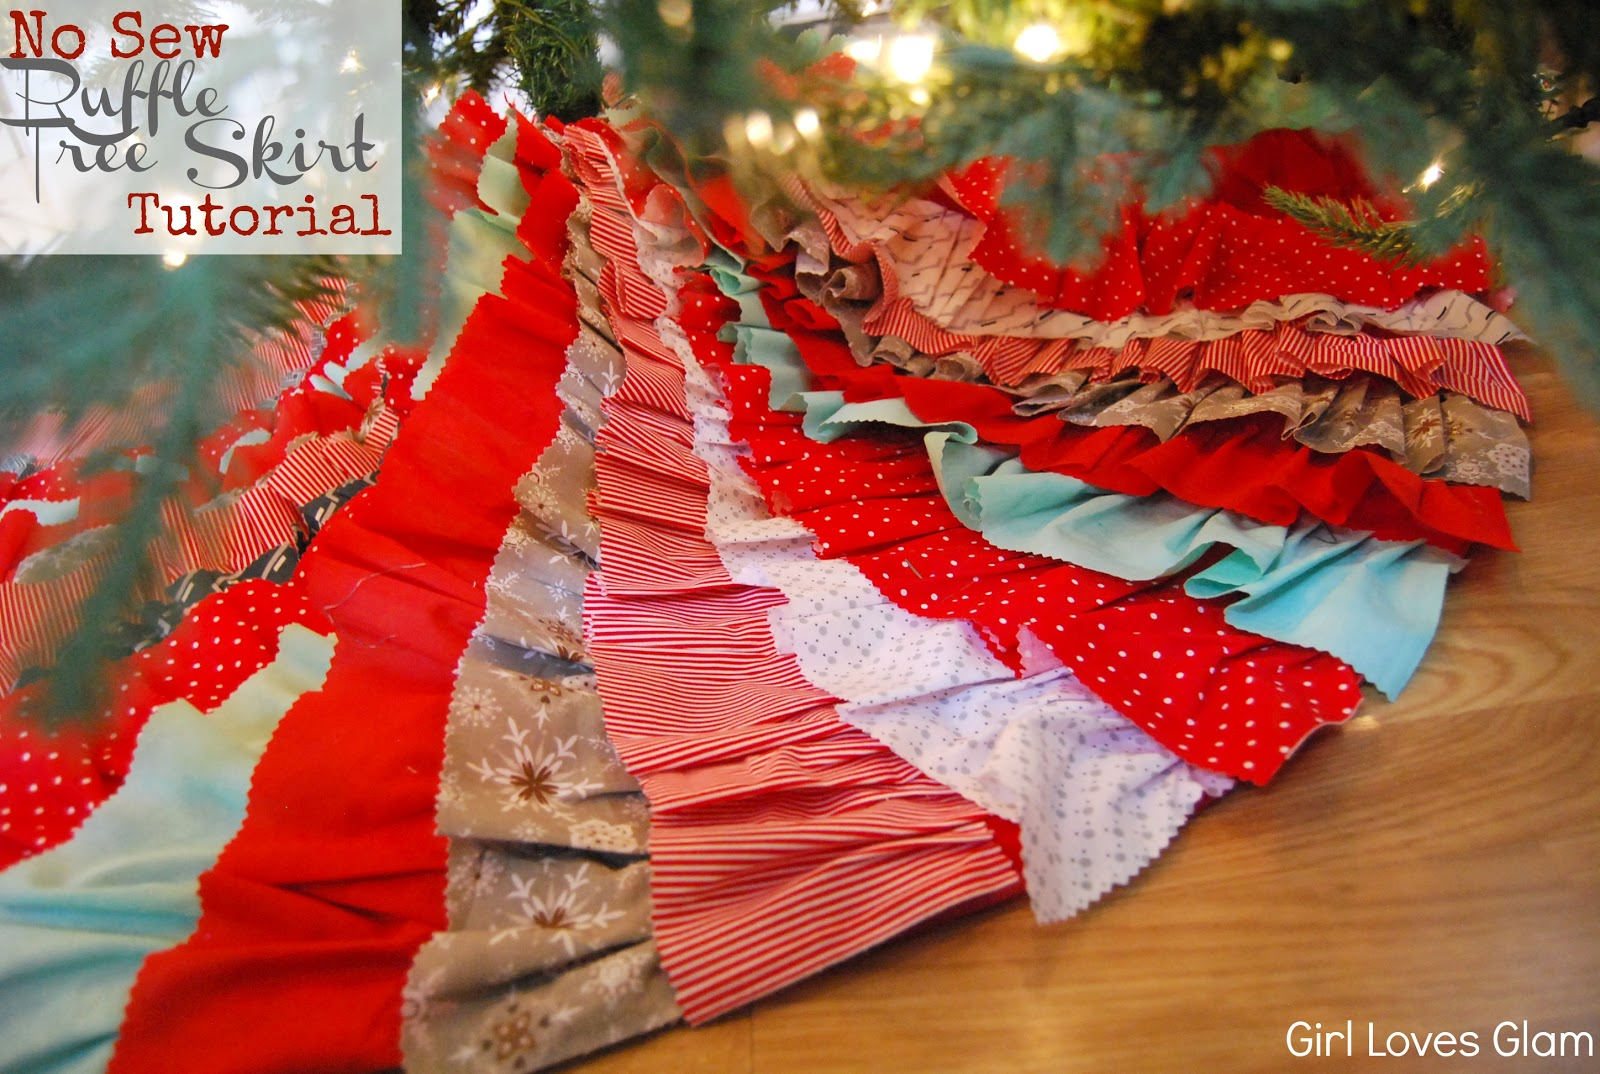 No Sew Ruffle Tree Skirt Tutorial(ish) - Girl Loves Glam